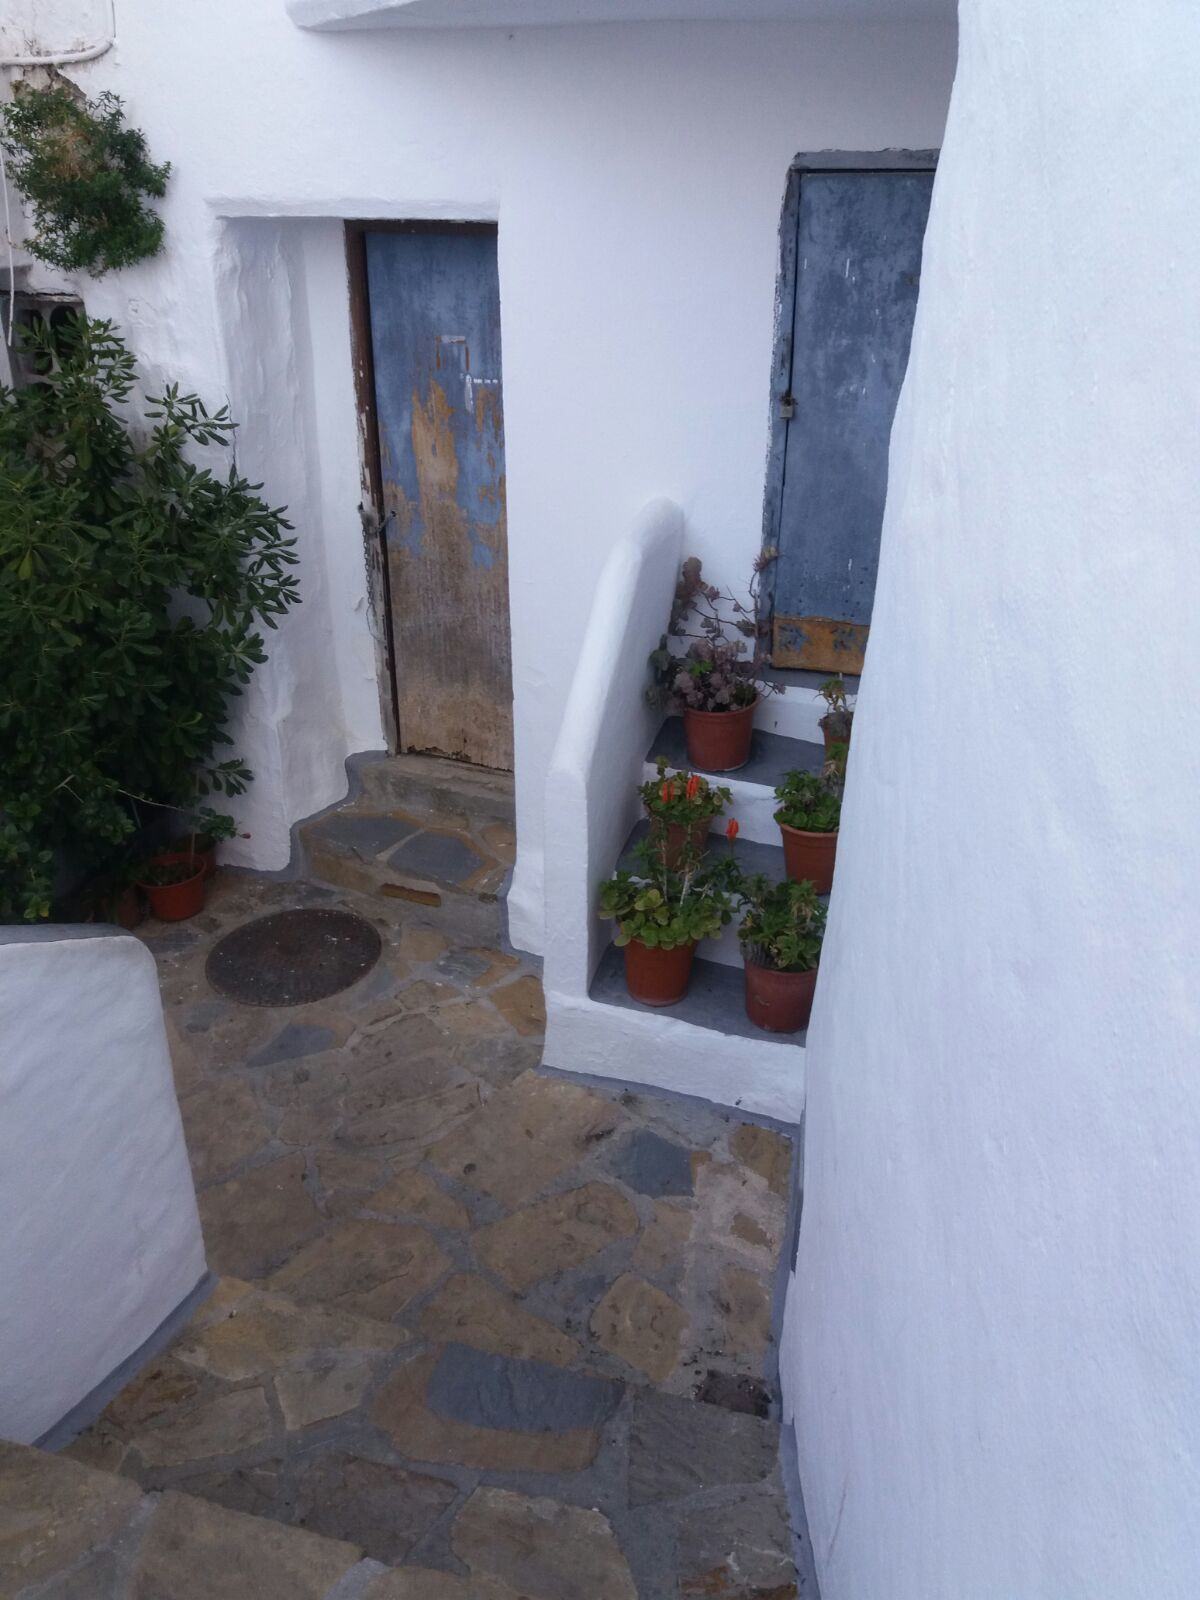 4 Bedroom Detached Villa For Sale Casares